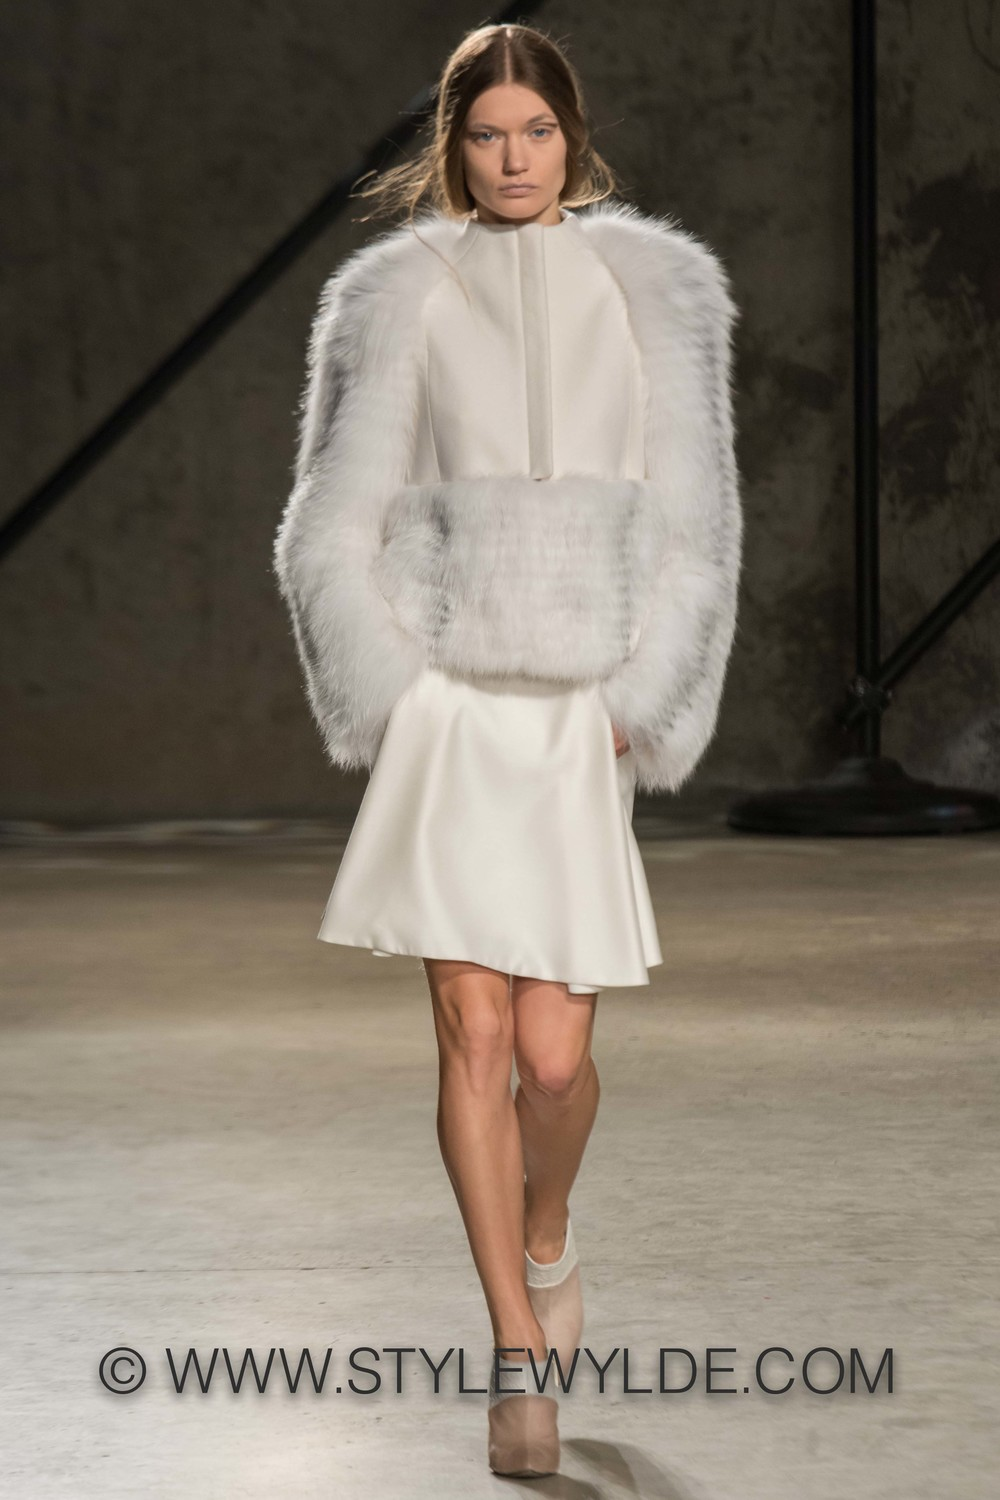 stylewylde_sally_lapointe_fw_2014-3.jpg